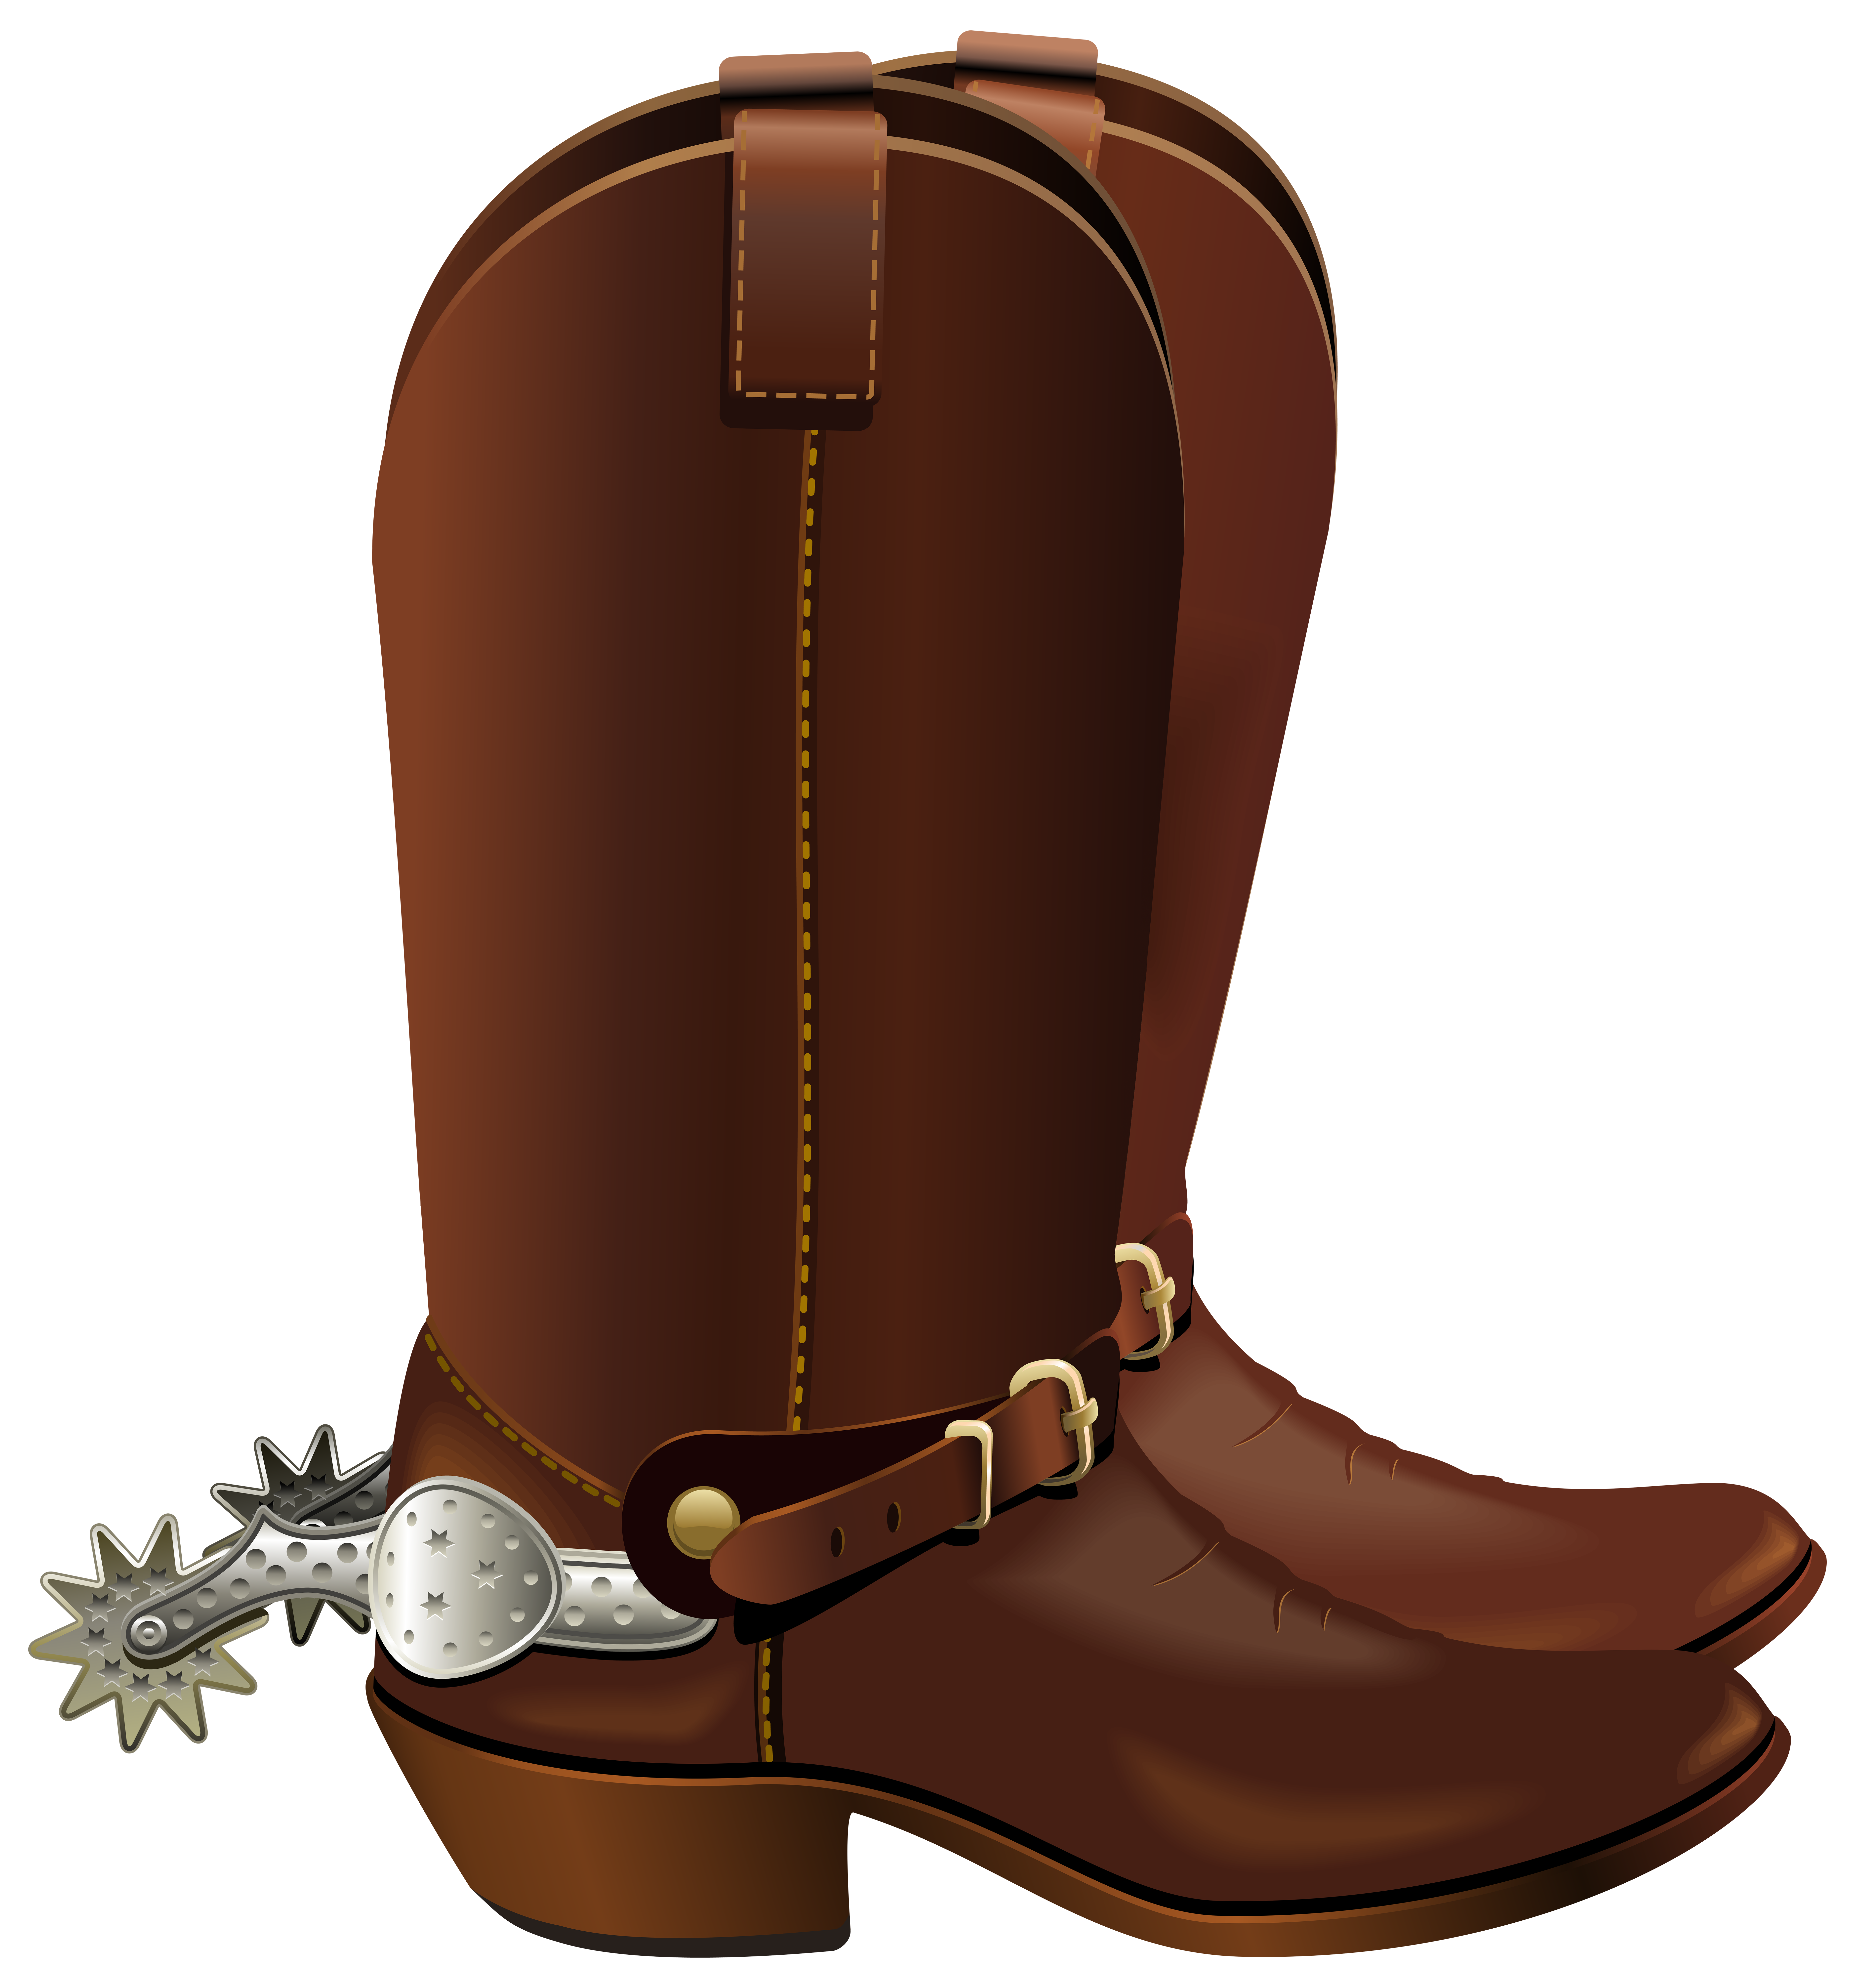 Cowboys boots clipart with crown clip art 28+ Collection of Cartoon Cowboy Boots Clipart | High quality, free ... clip art